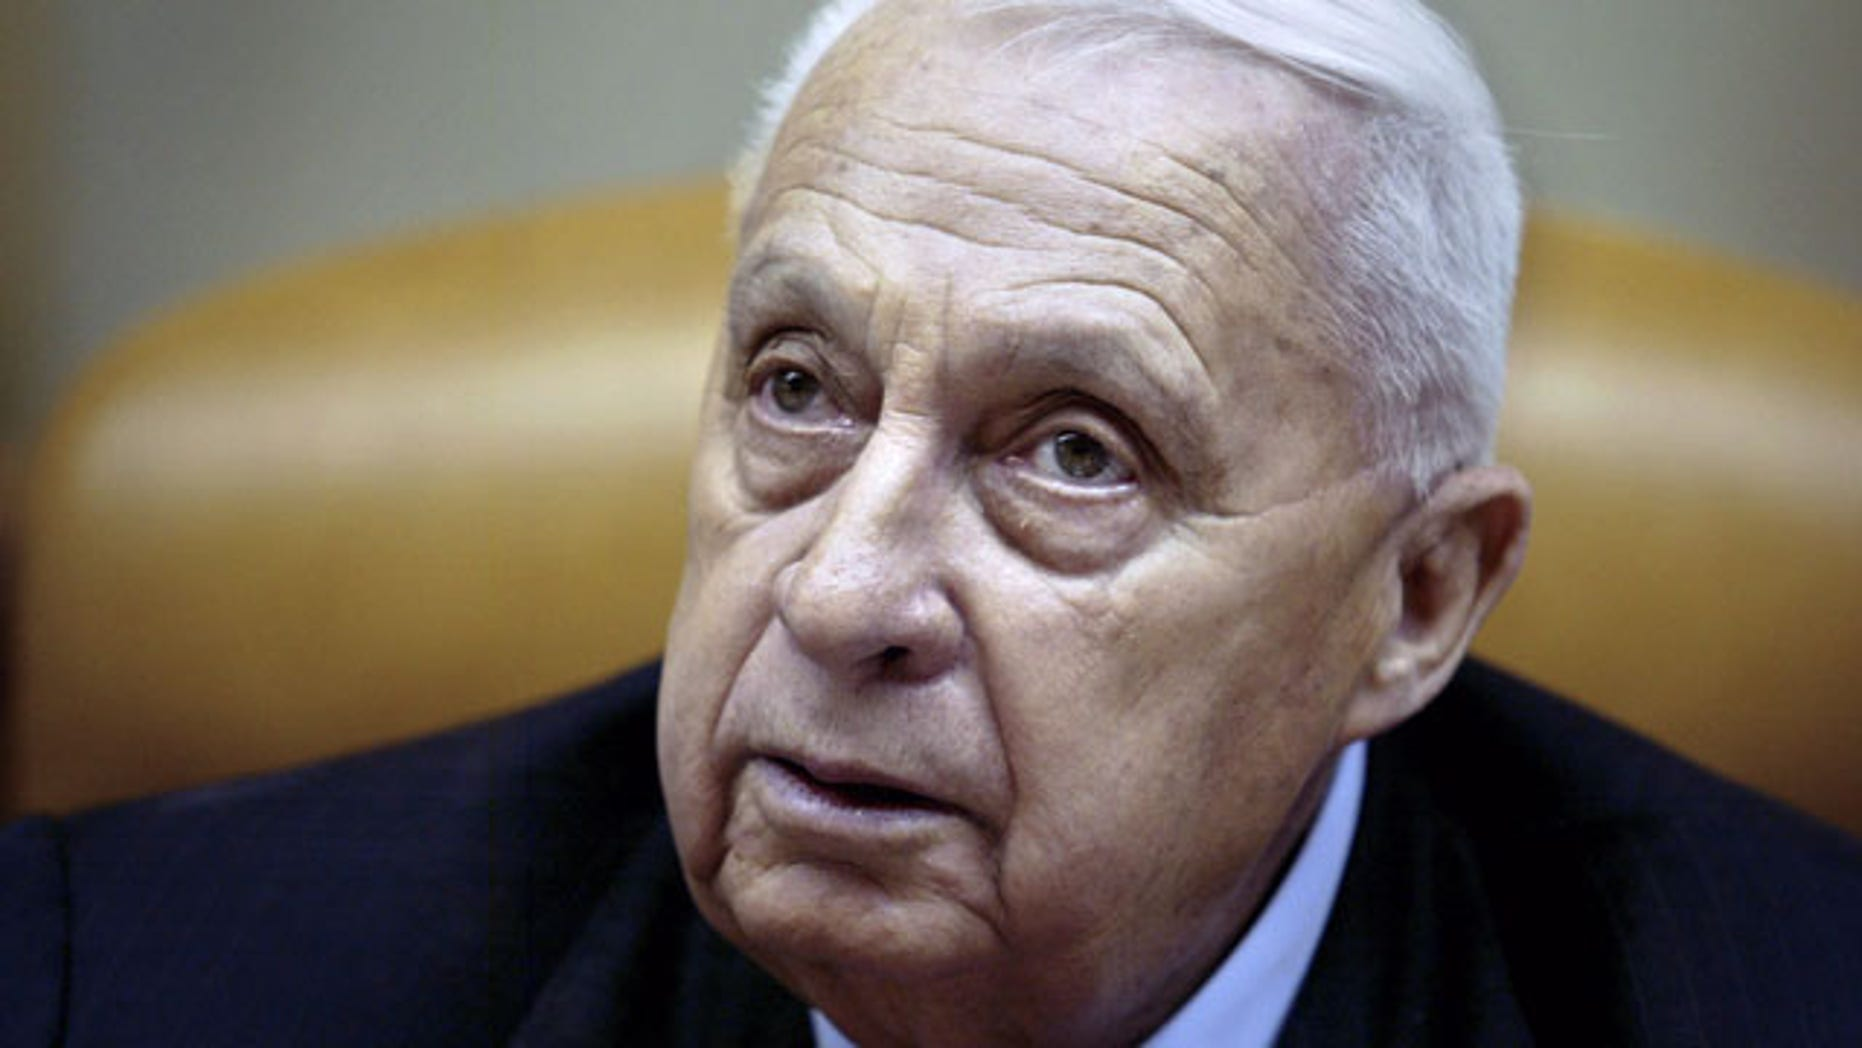 FILE -- In this Sunday Jan. 30, 2005 file photo, Israeli Prime Minister Ariel Sharon pauses during the weekly cabinet meeting in his Jerusalem office. (AP)